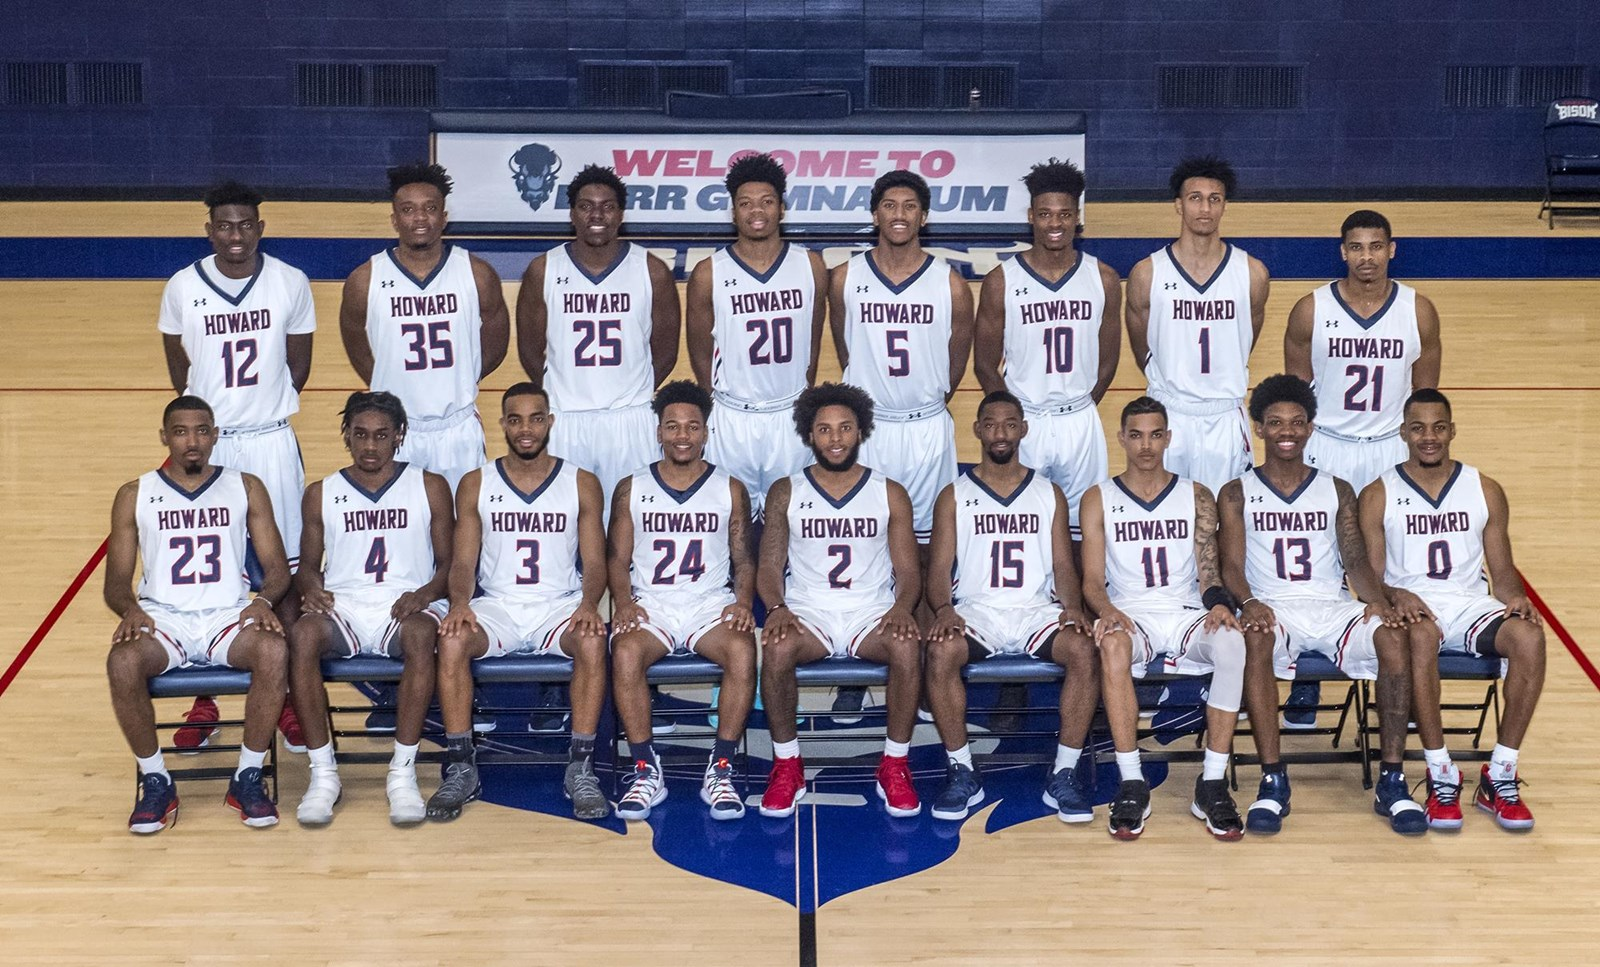 best service 1fa95 cbb87 2018-19 Men's Basketball Roster - Howard University Athletics